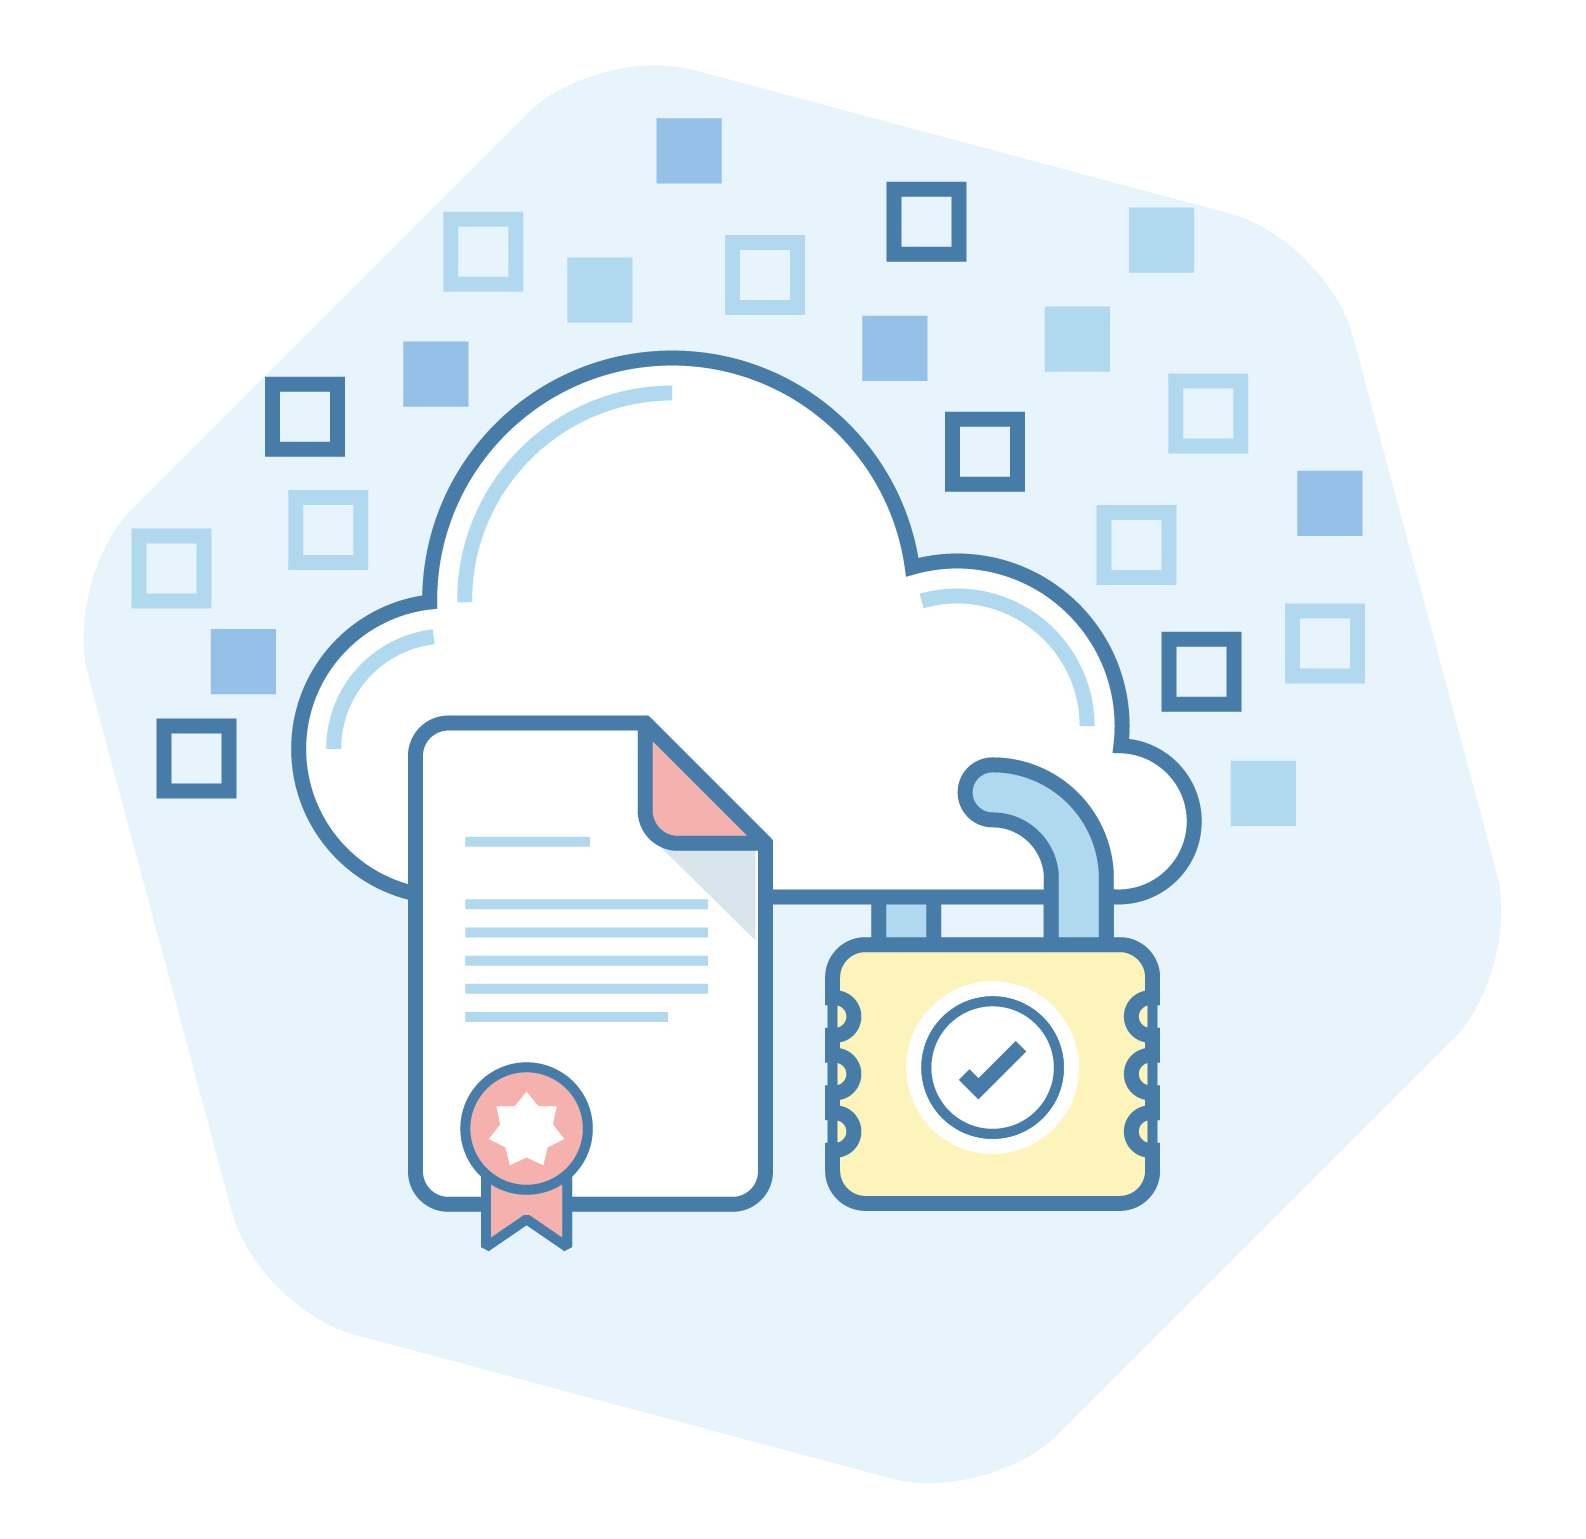 Security padlock on a cloud with a compliance certificate